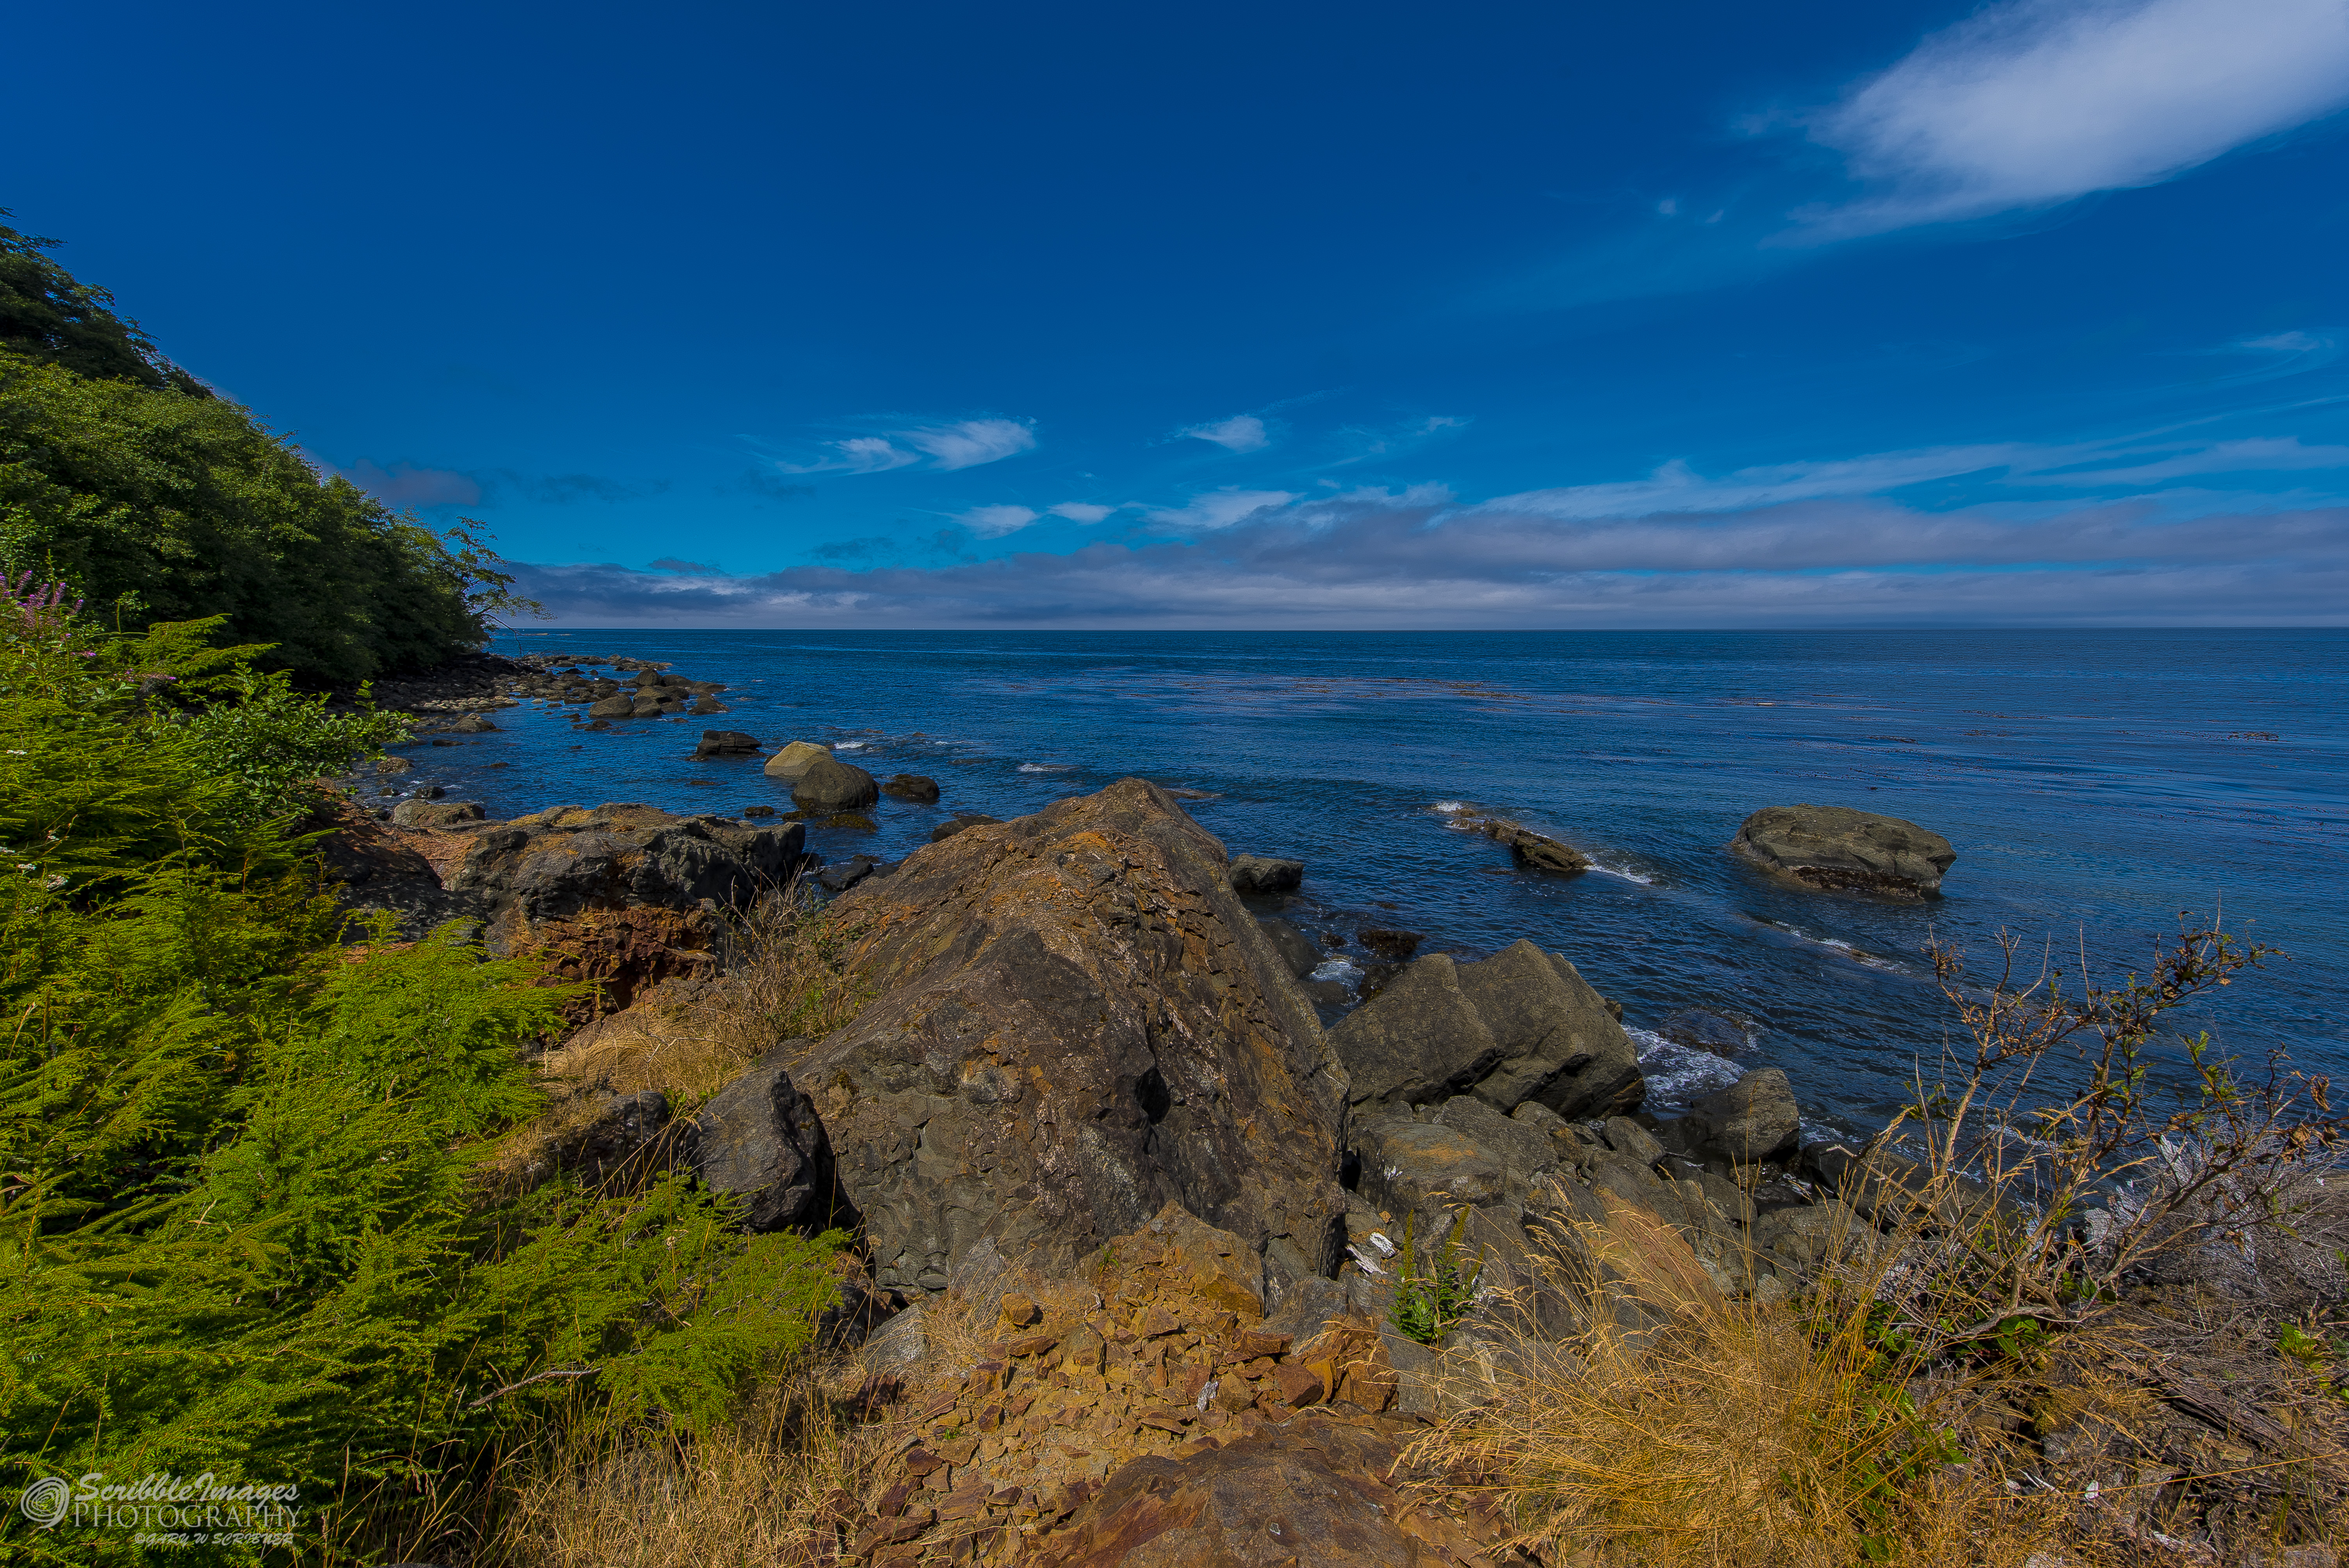 On the road to Cape Flattery